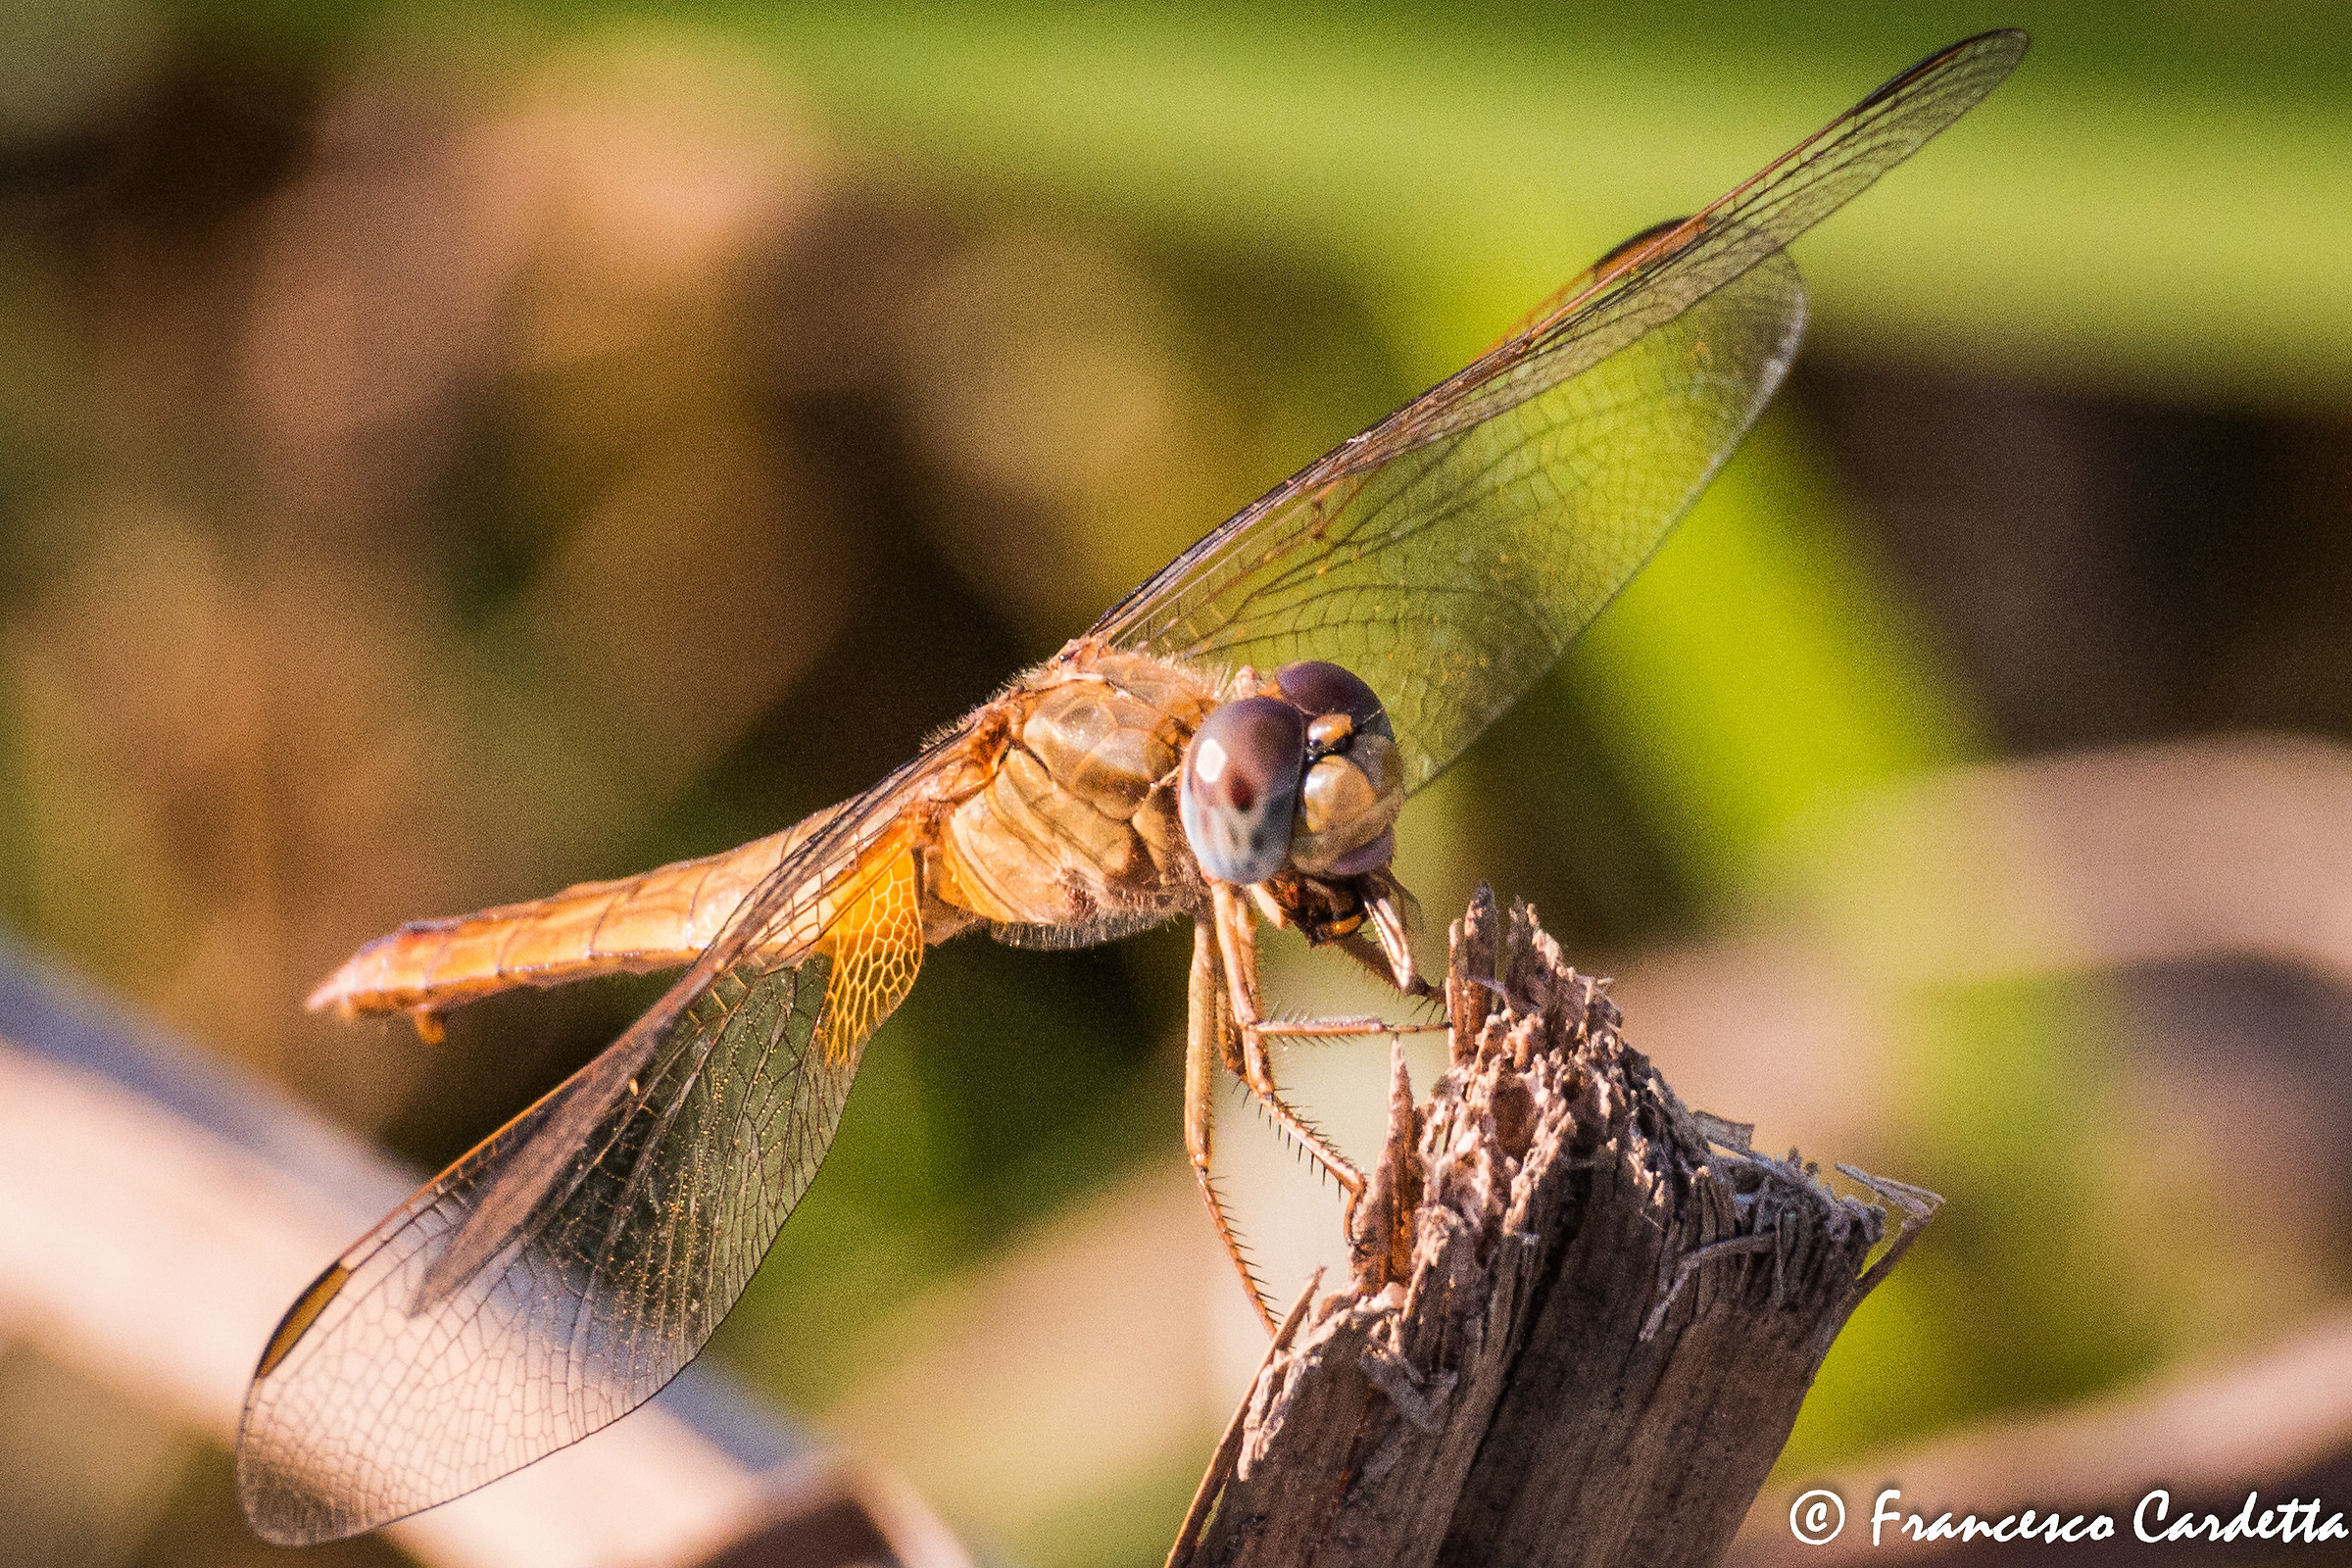 Dragonfly lunch - lunch of a dragonfly...